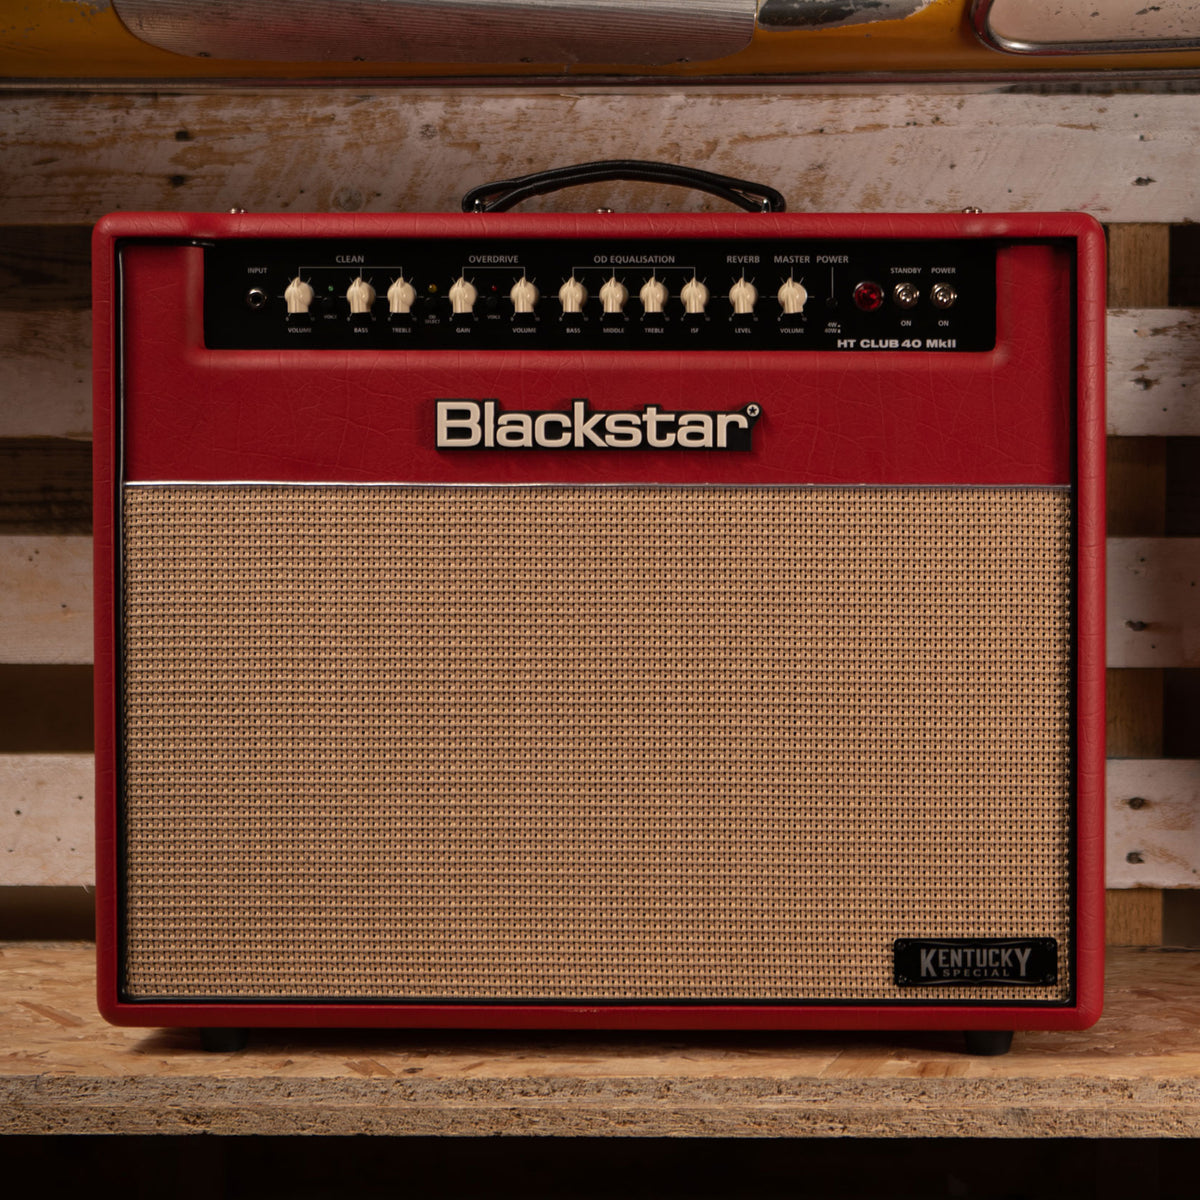 Blackstar HT Club 40 MkII - 'Kentucky Special'